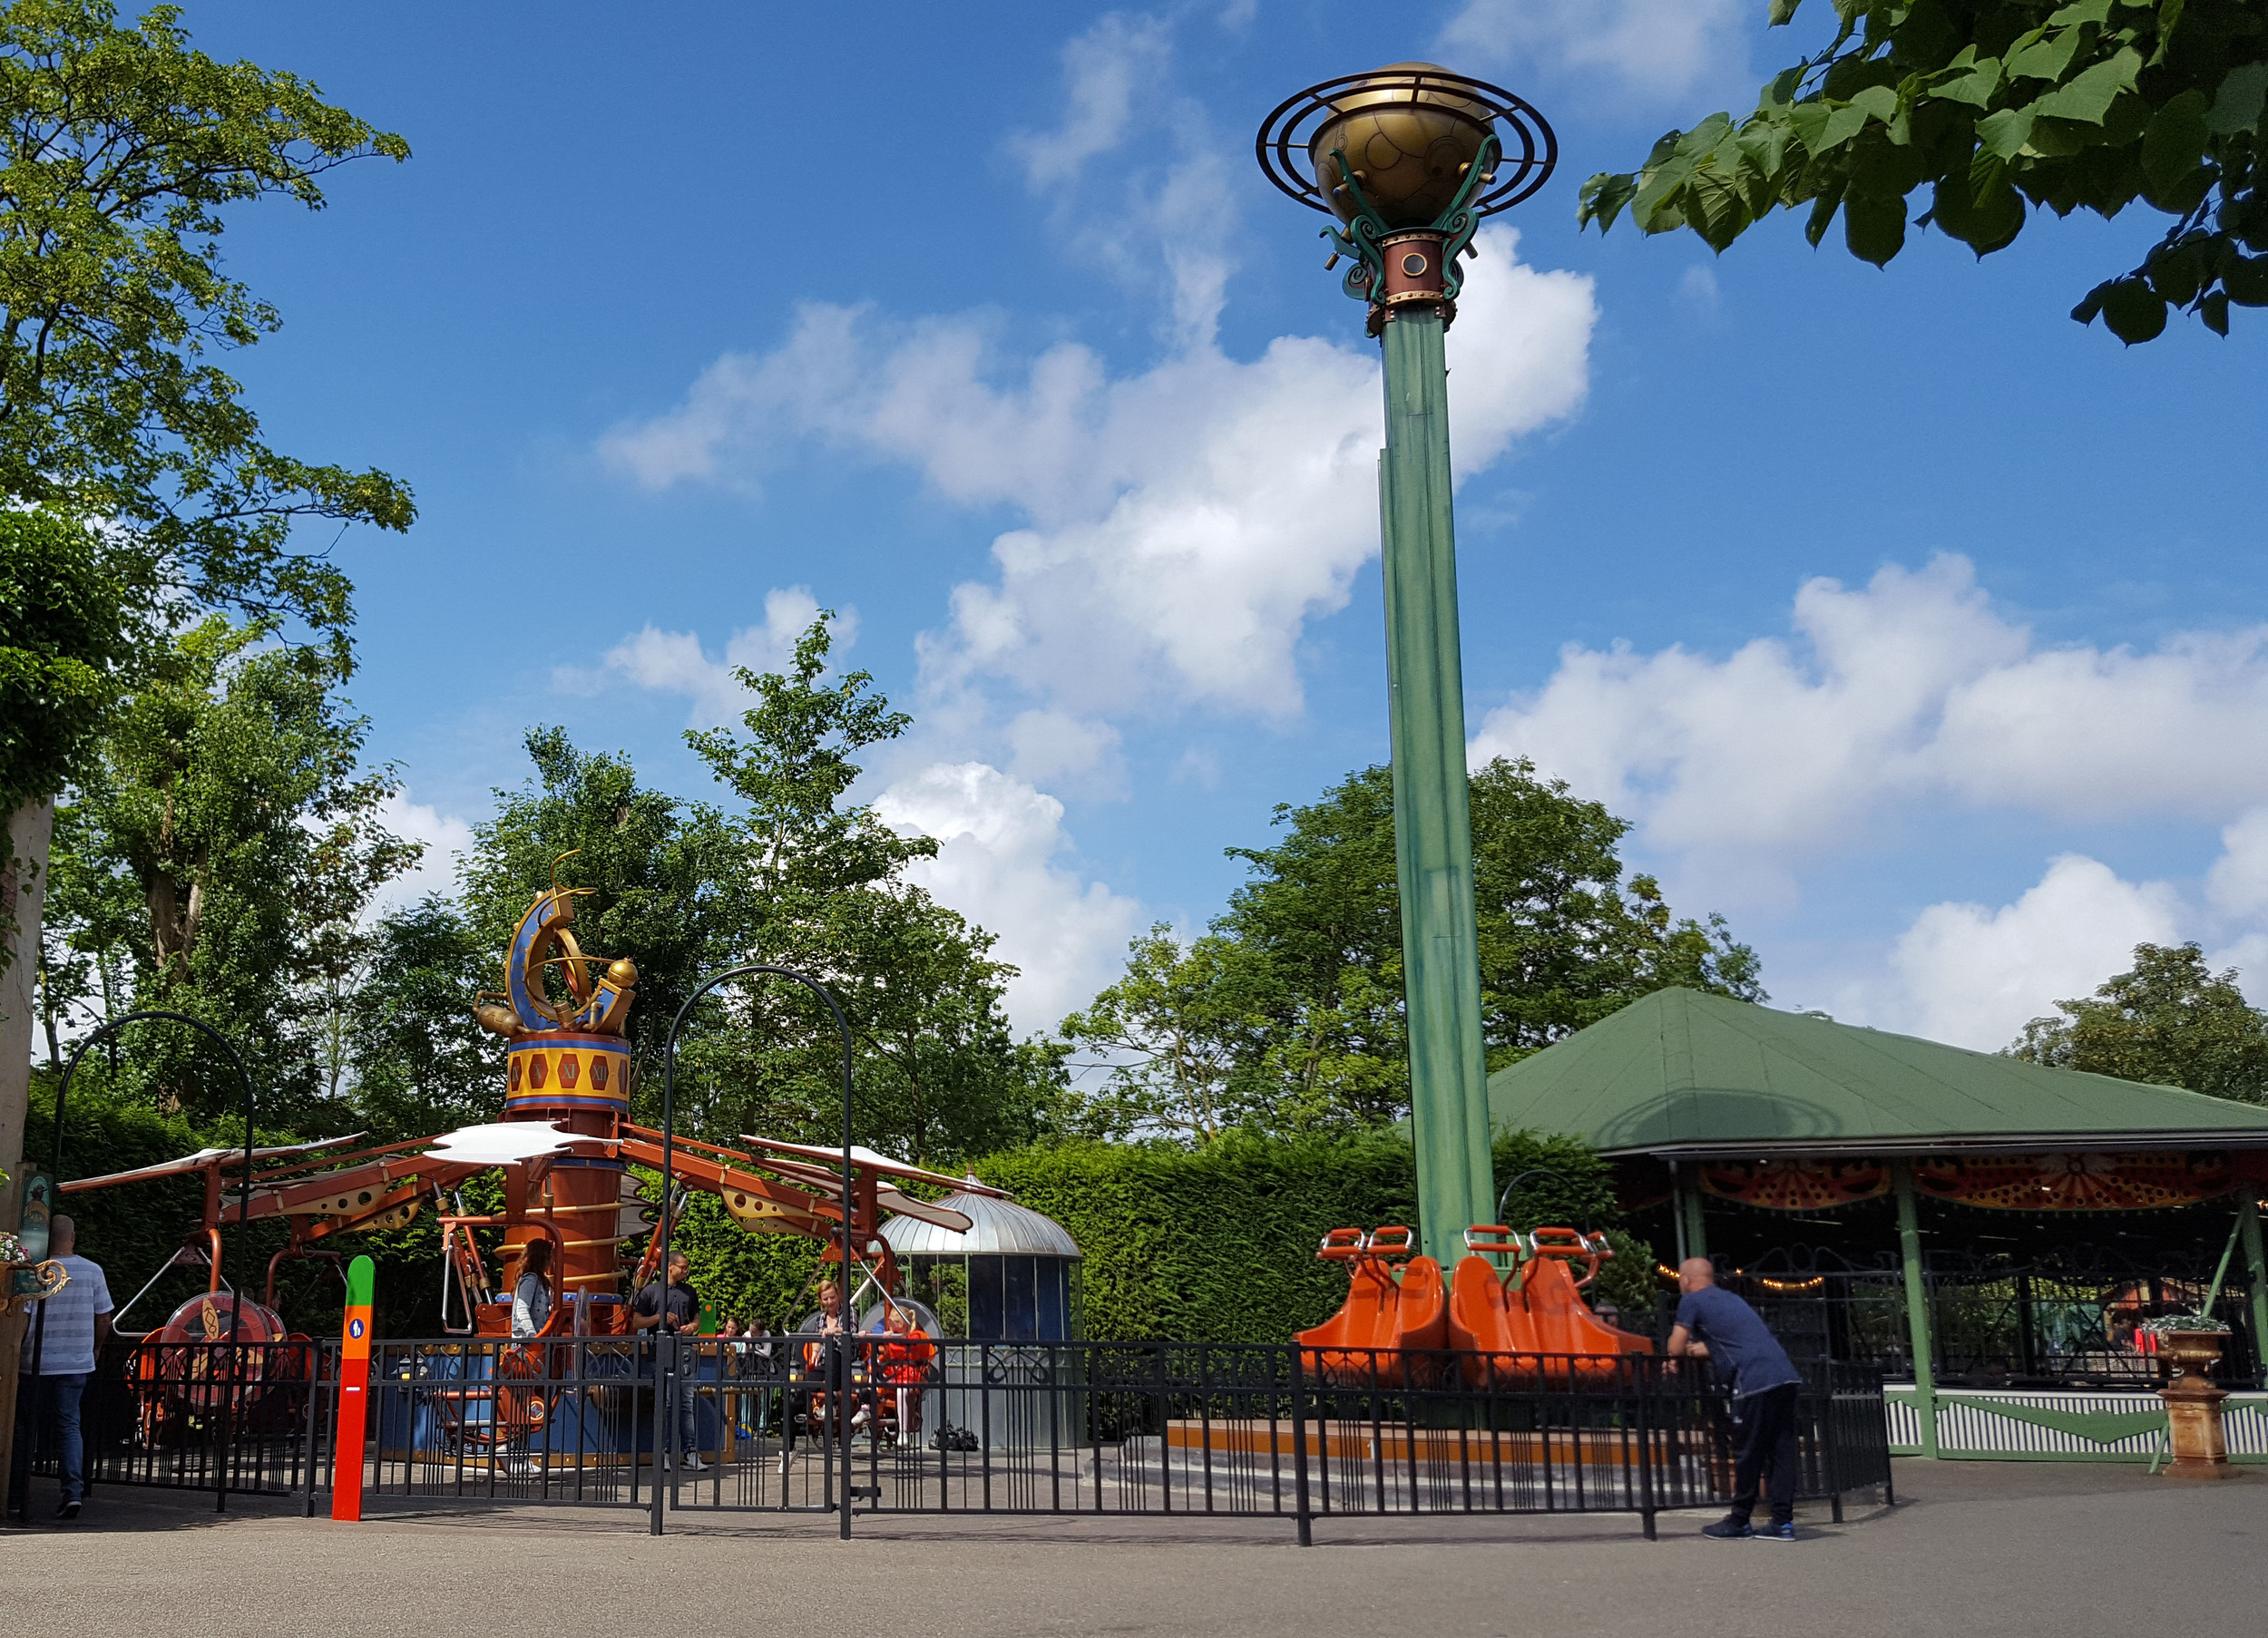 CHUTE & TIME MACHINE DRIEVLIET <strong>| Are you ready to try this whimsical World's Fair inventions?</strong>